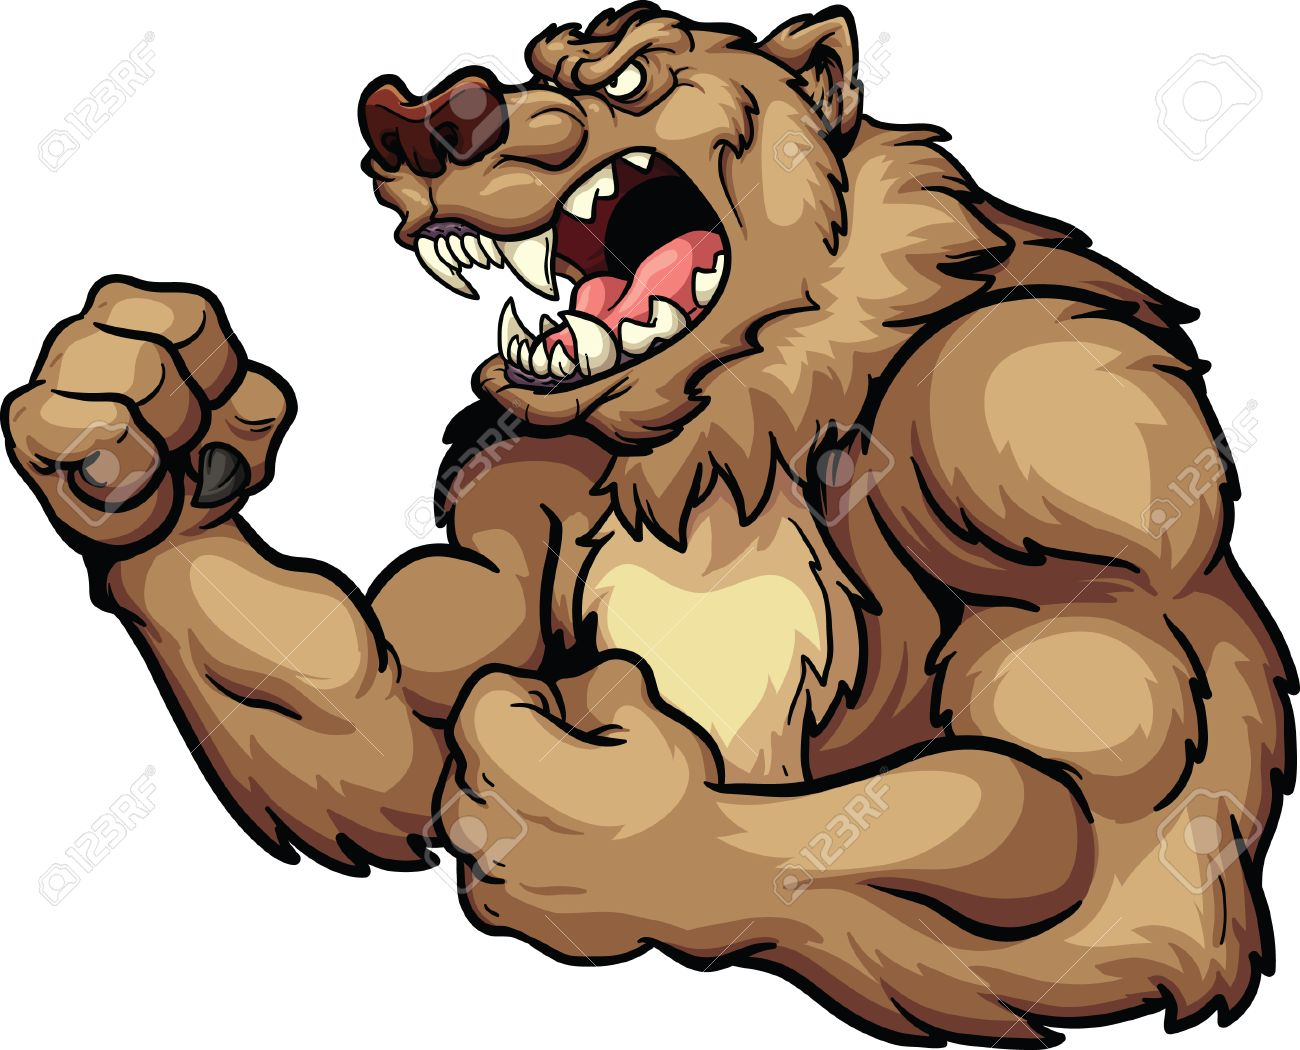 hight resolution of angry bear mascot vector clip art illustration all in a single layer stock